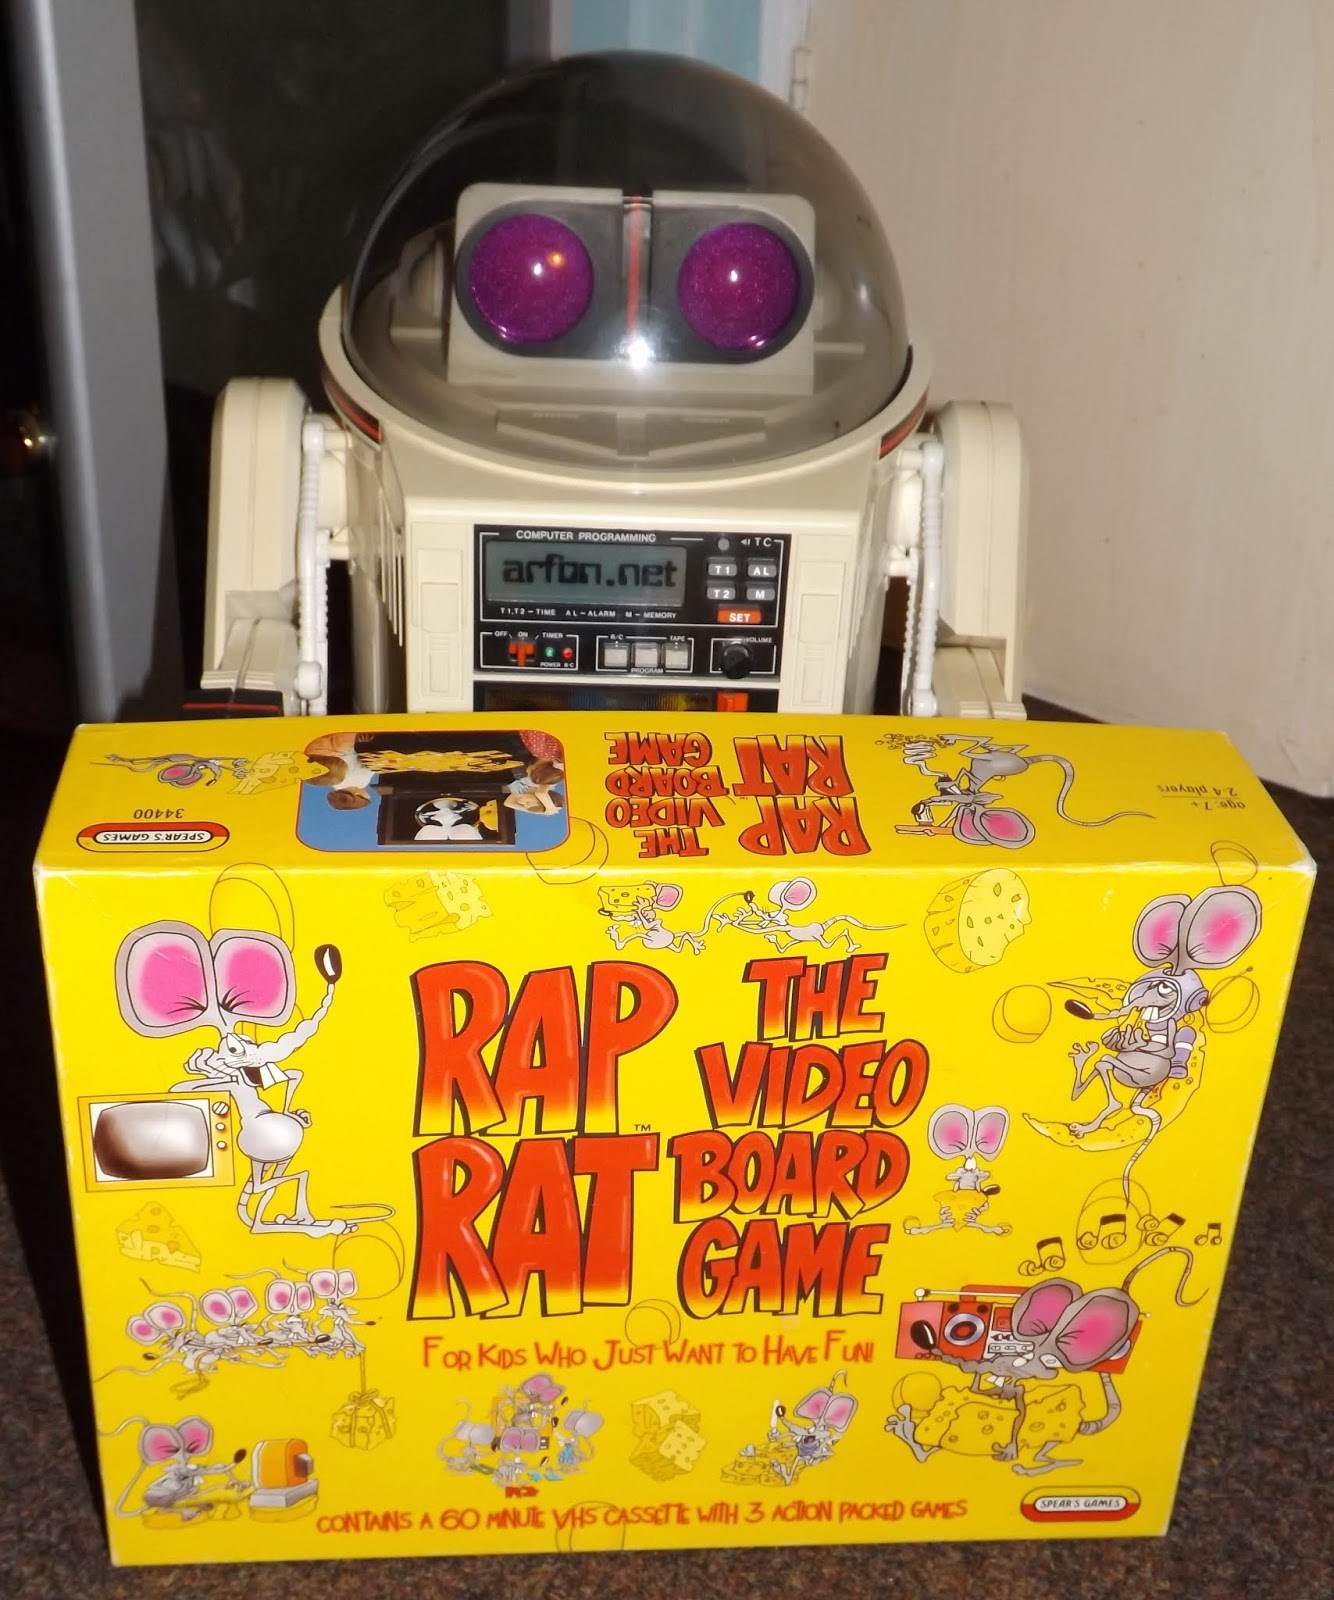 Arfonnet The Art Of Arfon Jones Omnibots Robot Root Out Rap Rat